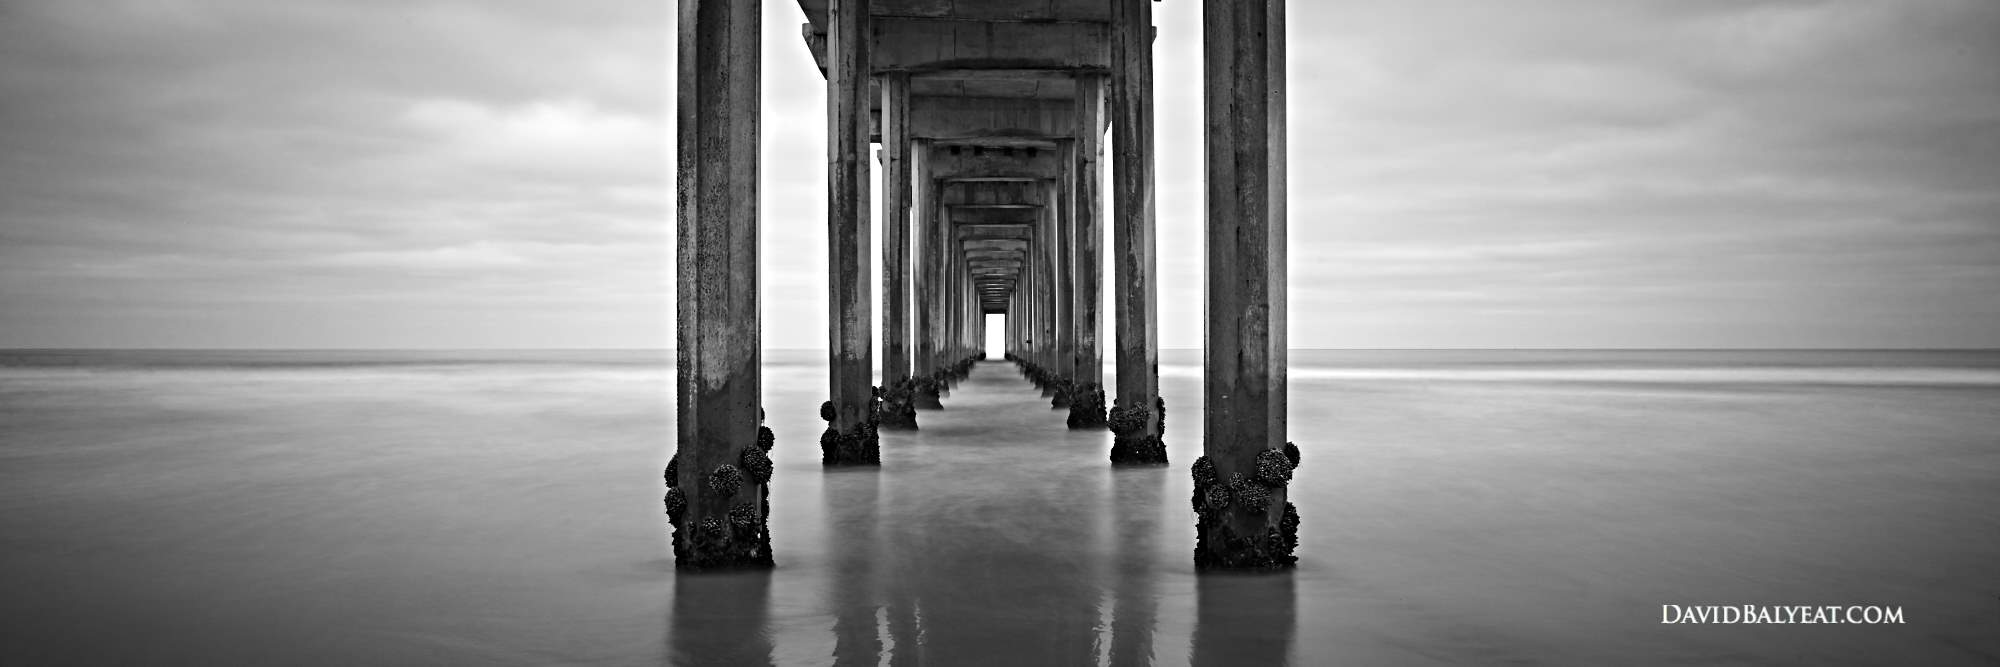 California Scripps Pier La Jolla Panoramic black and white high definition HD professional landscape photography